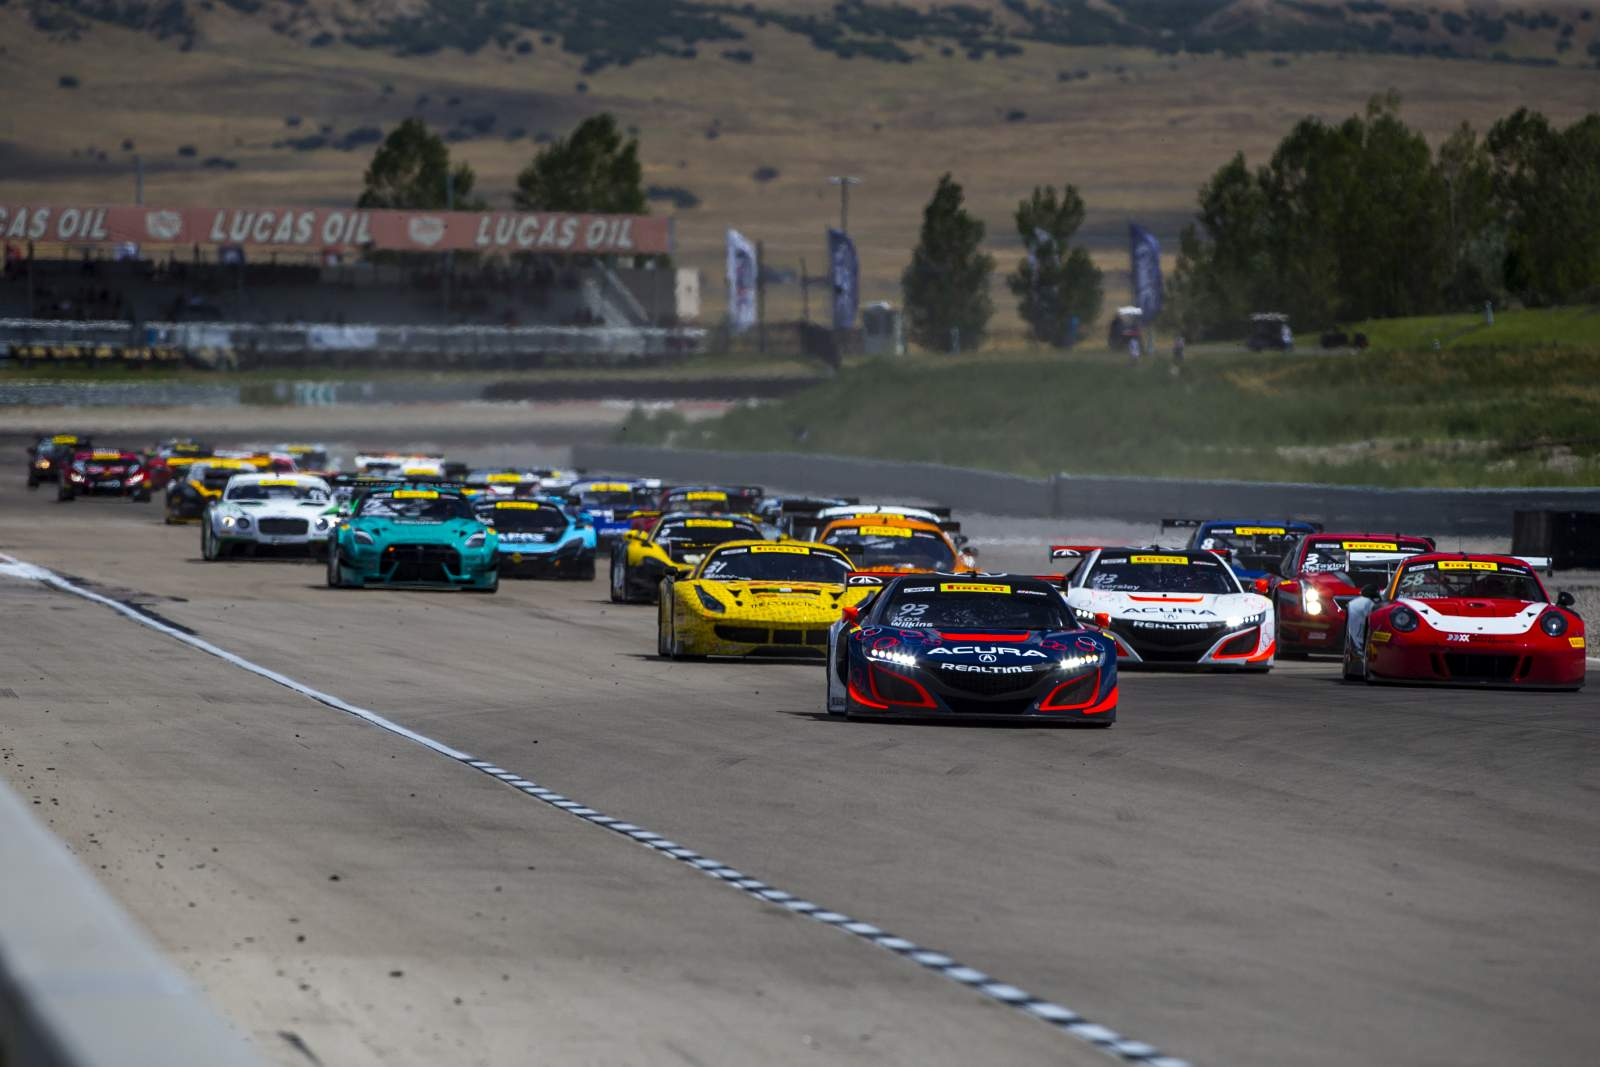 peter-kox-realtime-racing-pirelli-world-challenge-utah-motorsport-campus--114